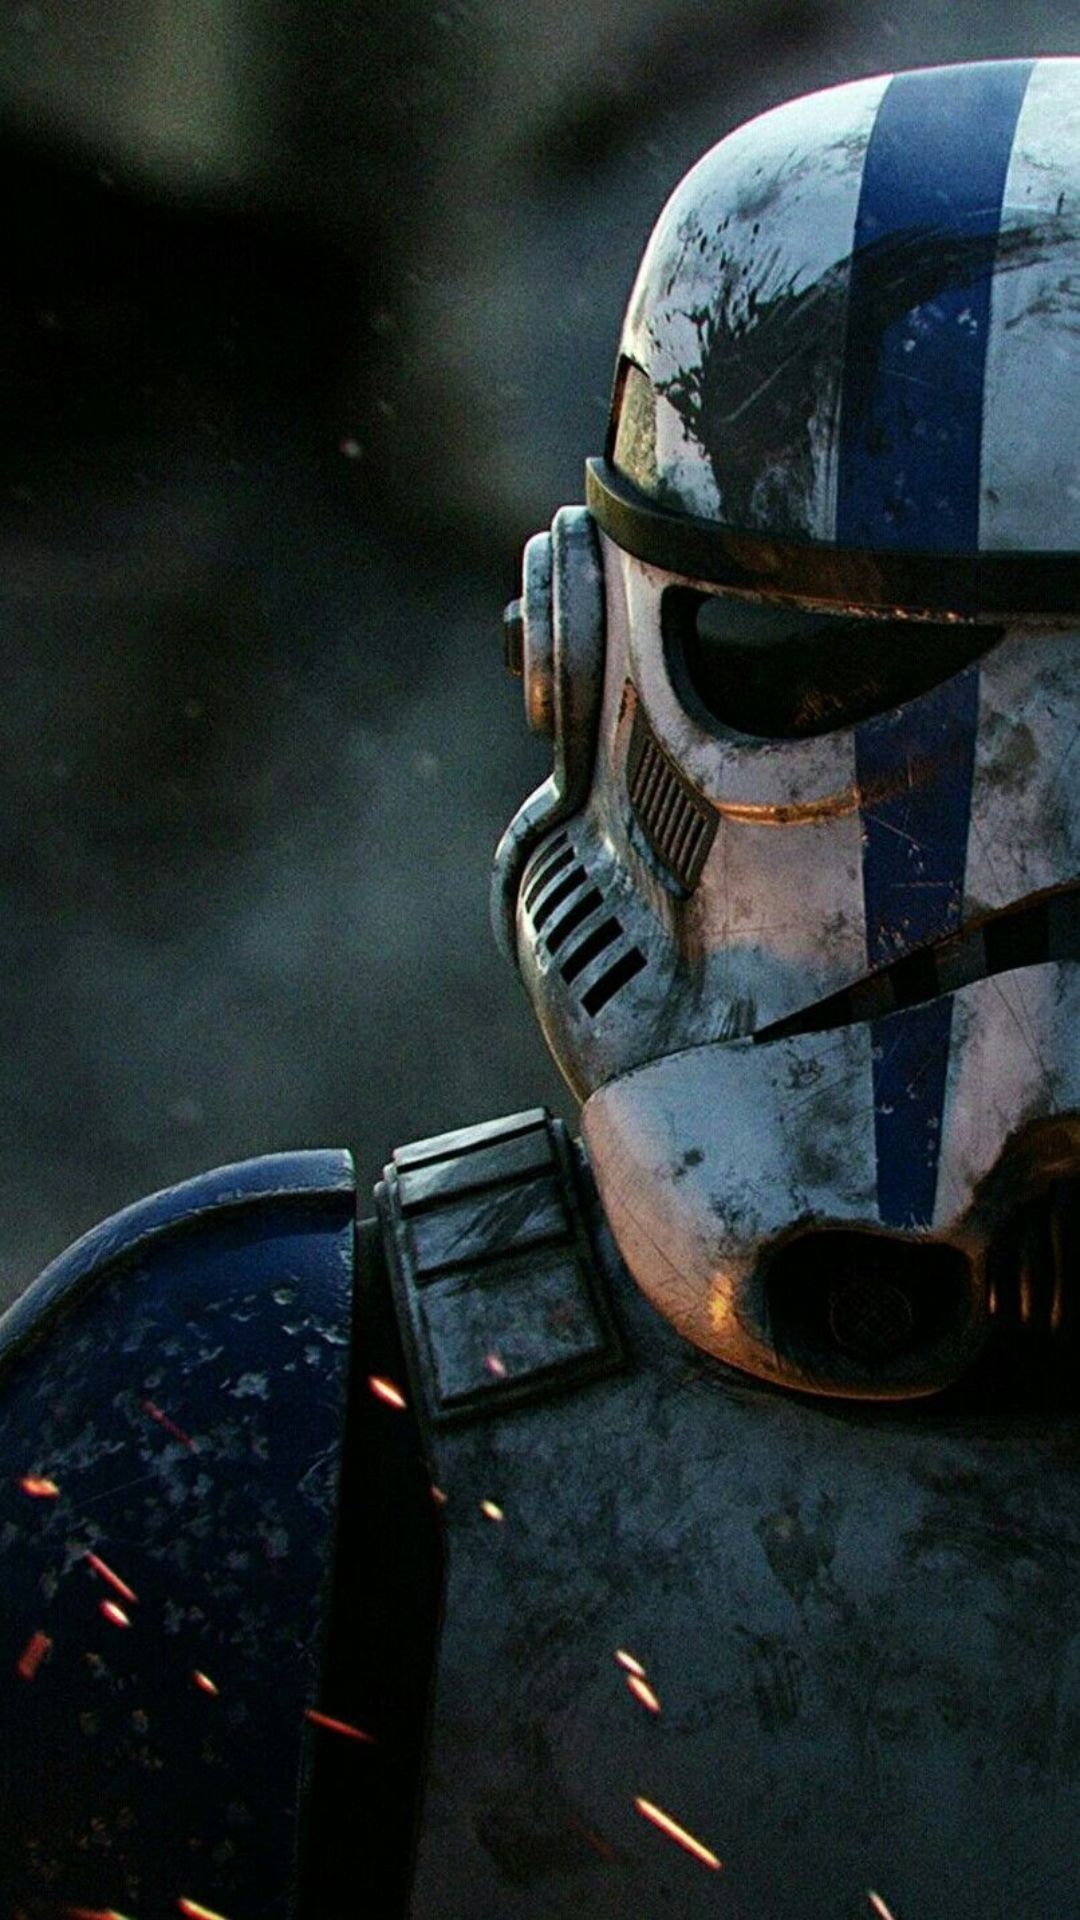 Pin By Jackson Davenport On Movies Star Wars Images Star